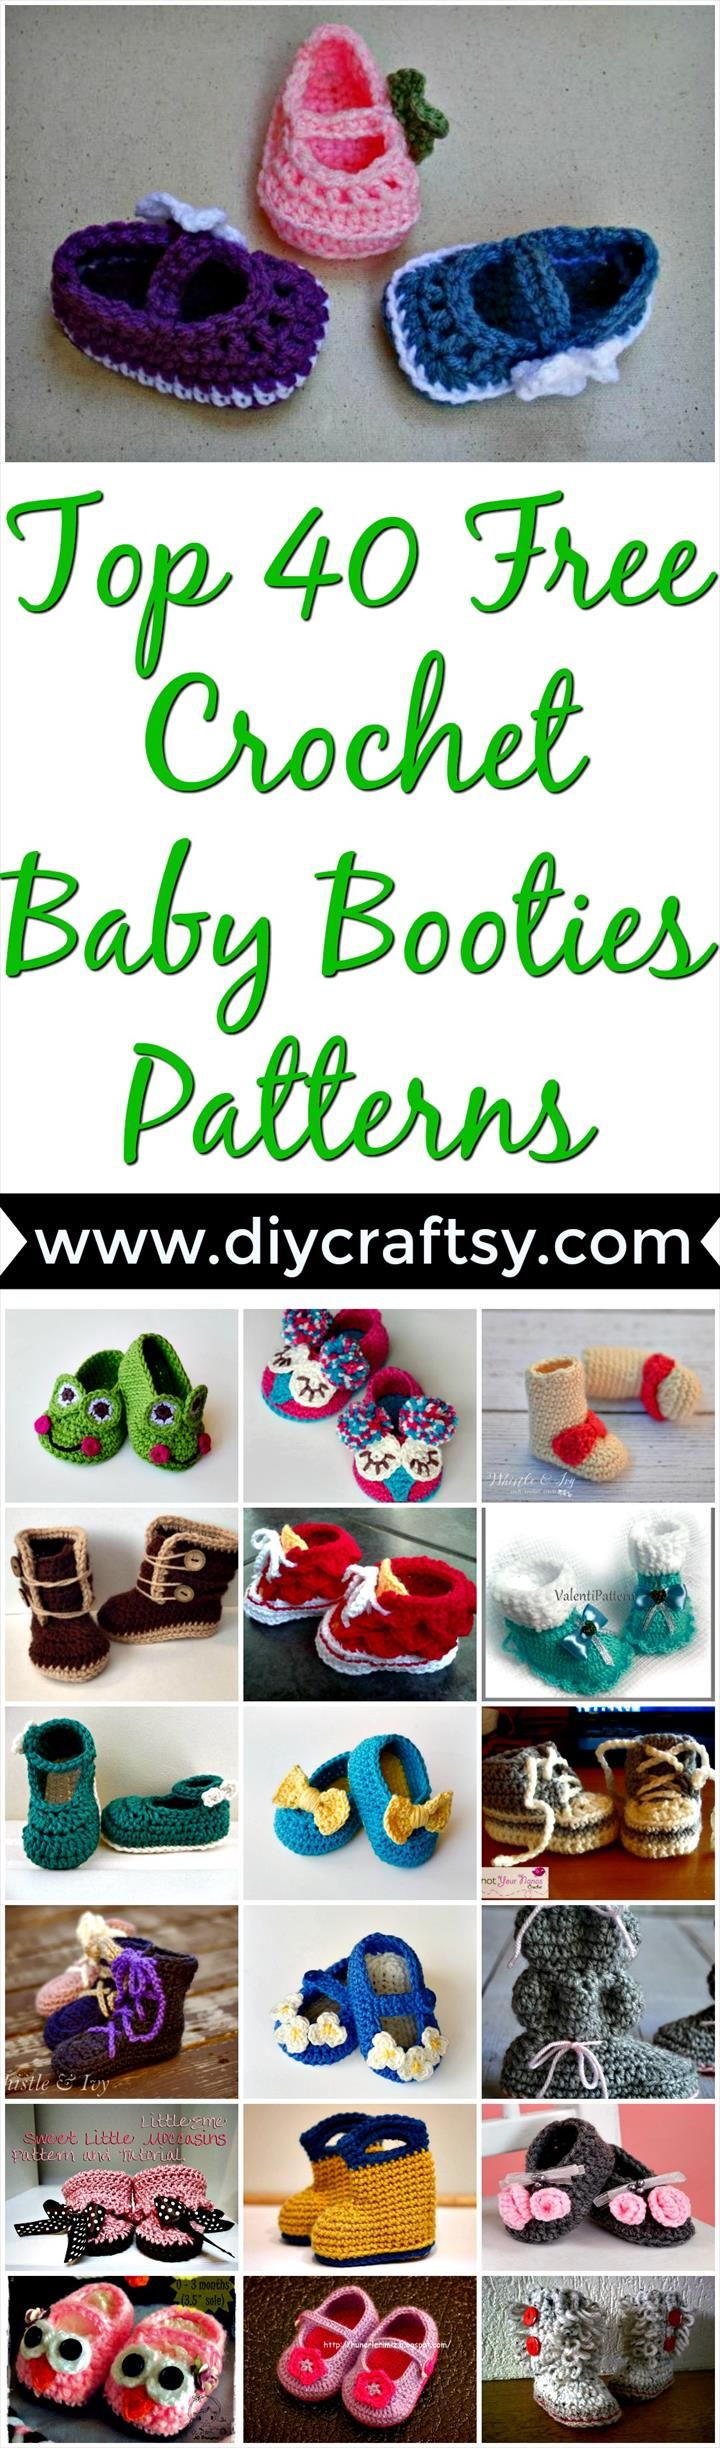 Top 40 Free Crochet Baby Booties Patterns- DIY & Crafts